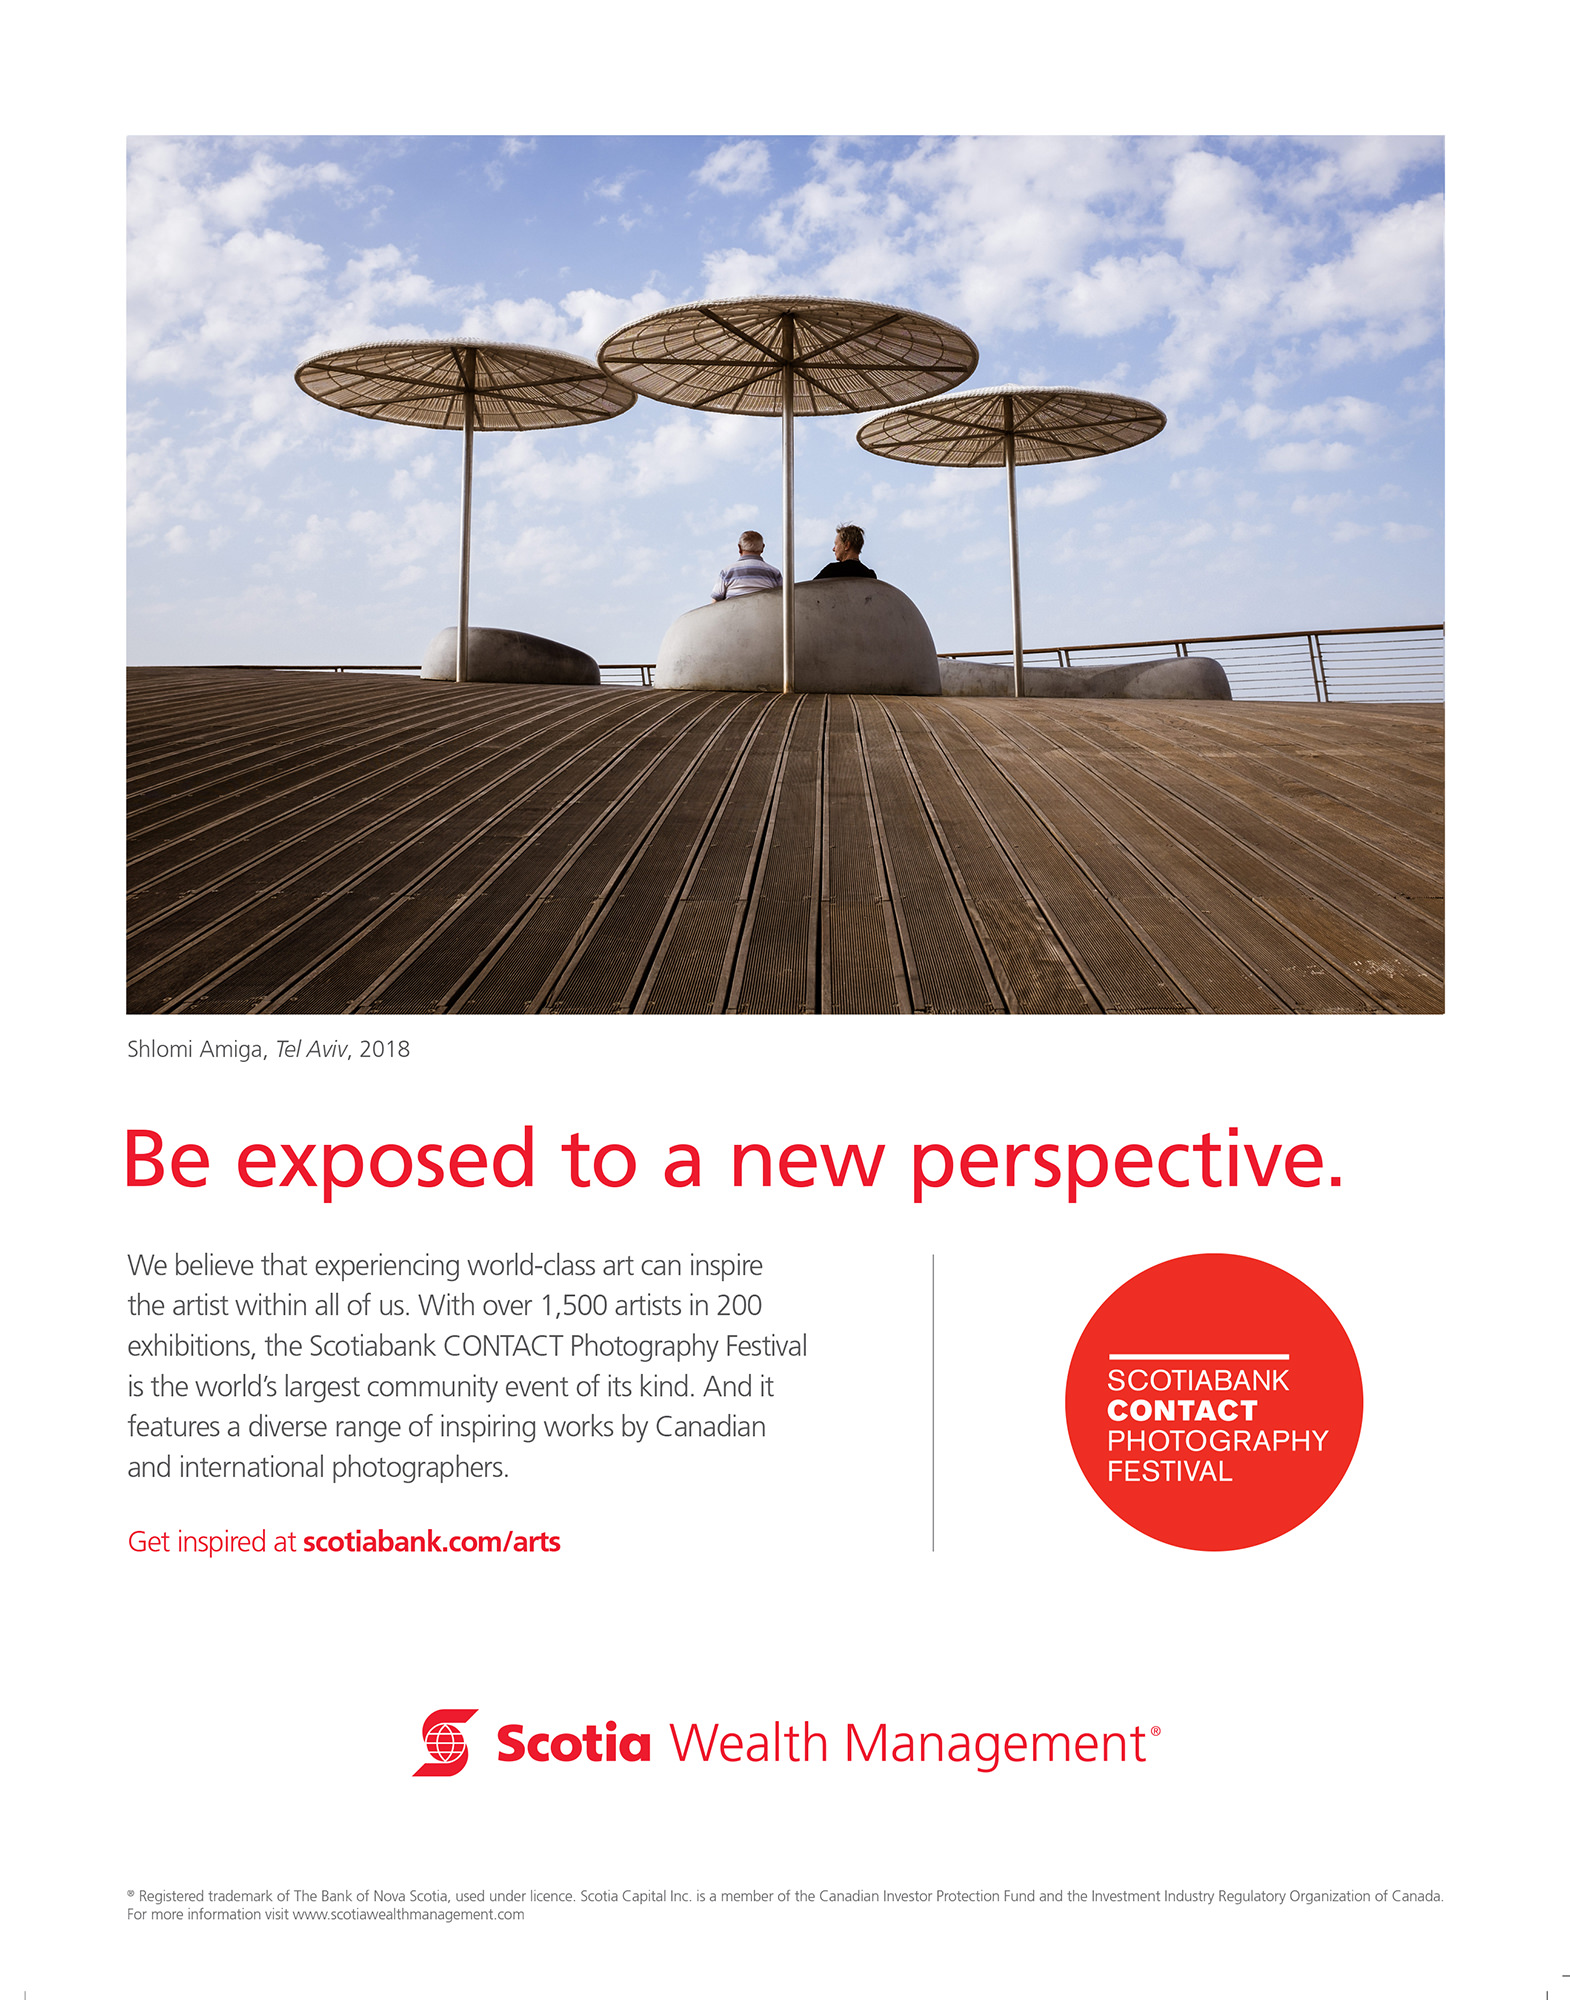 scotiabank-contact-photography-festival-official-ad-toronto-life.jpg